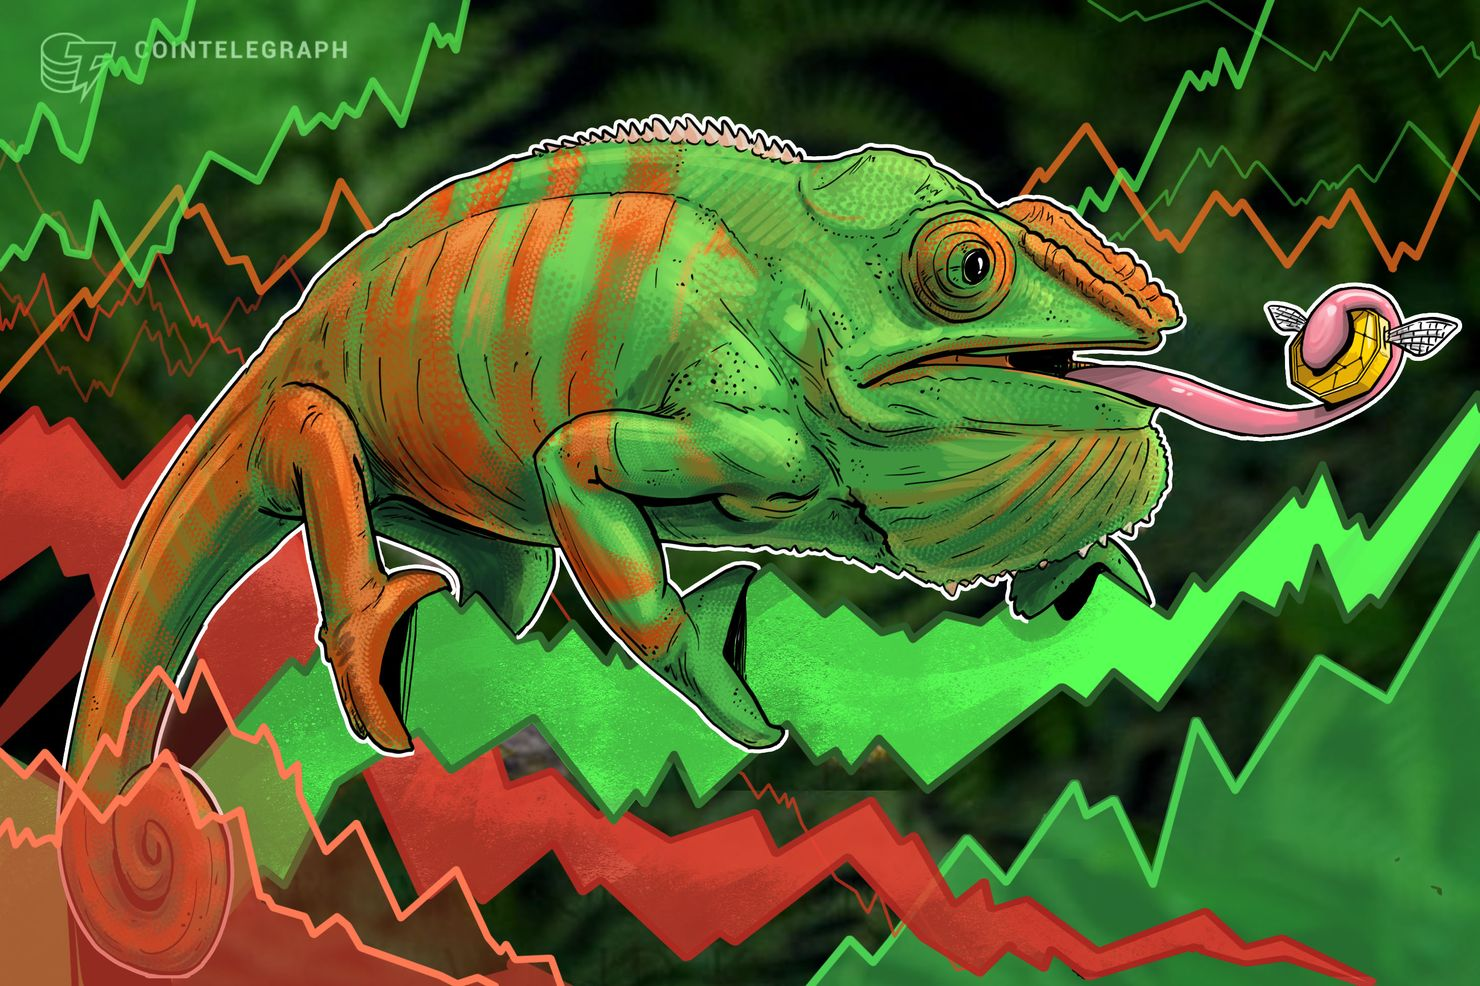 Almost All Top 100 Cryptocurrencies Solidly in Green, Dogecoin Skyrockets Over 40%